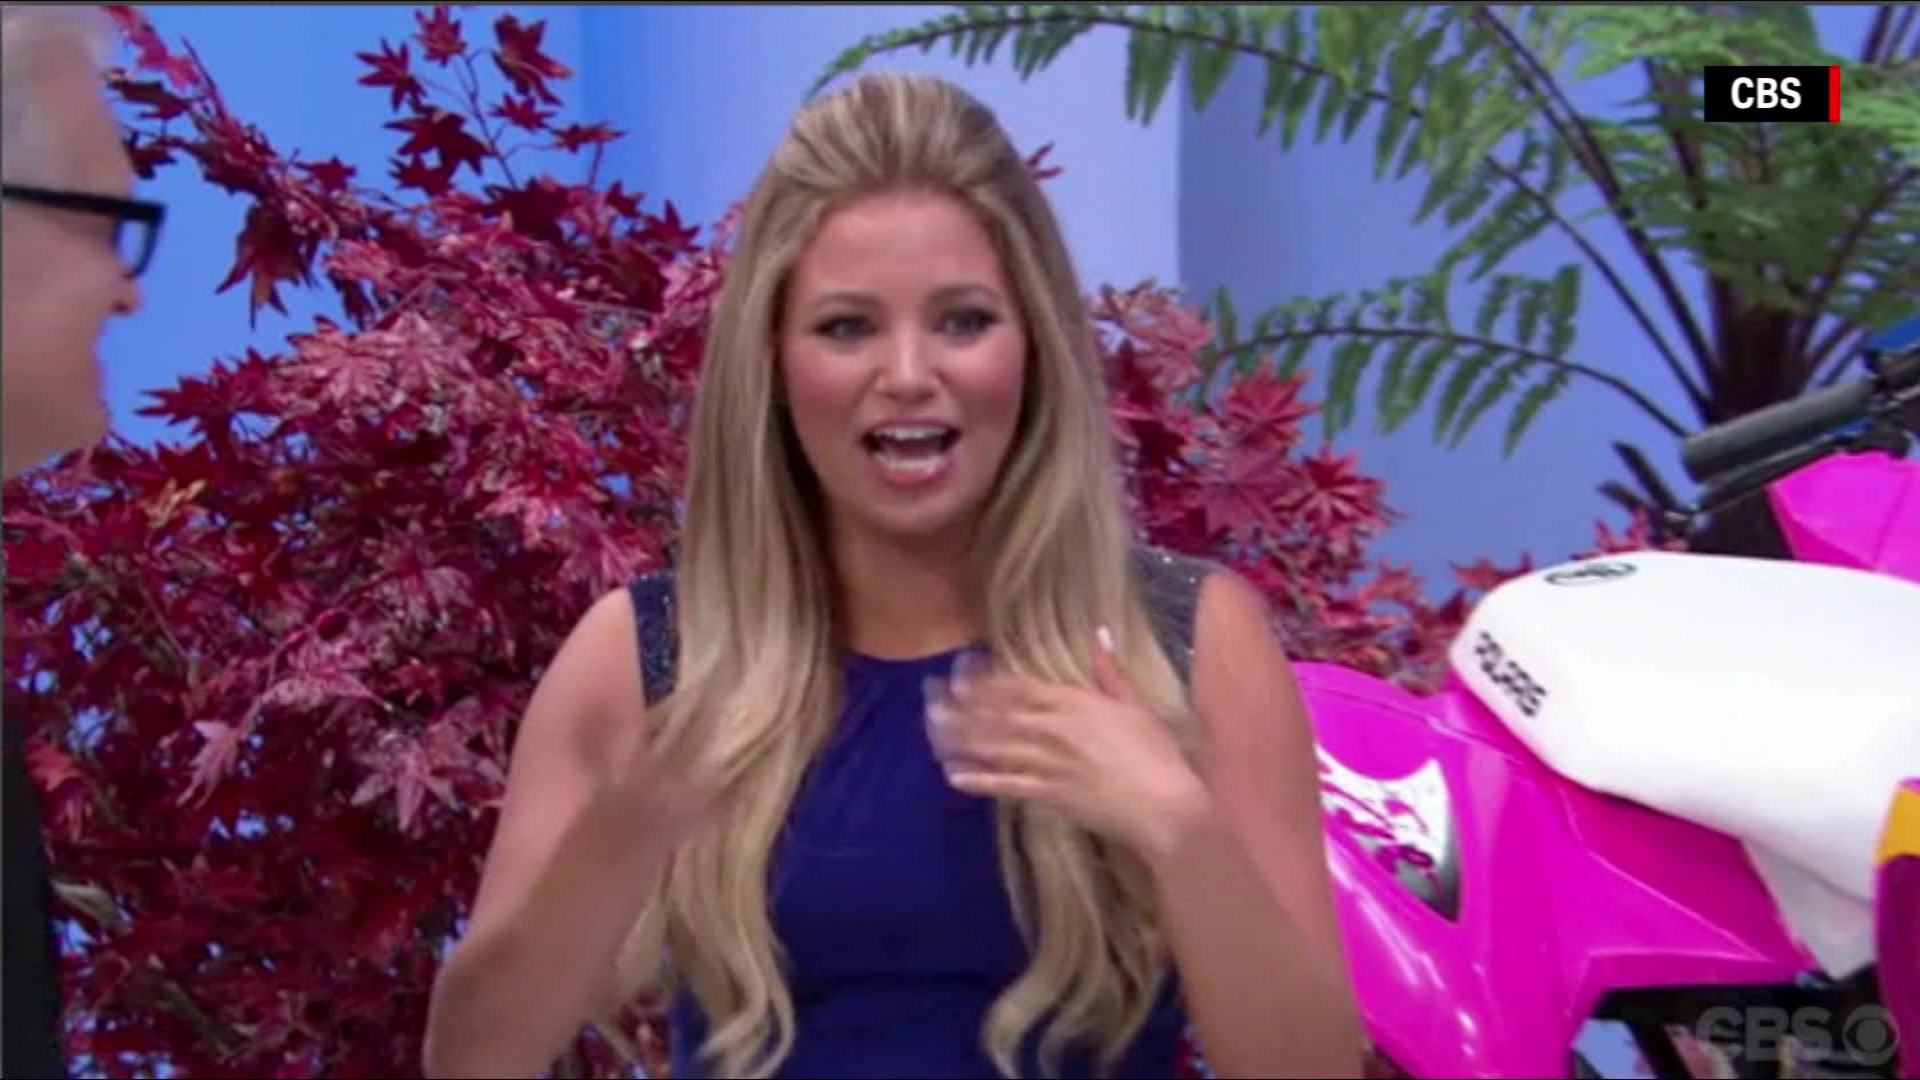 Amber Lancaster From The Price Is Right 'the price is right' model accidentally does this